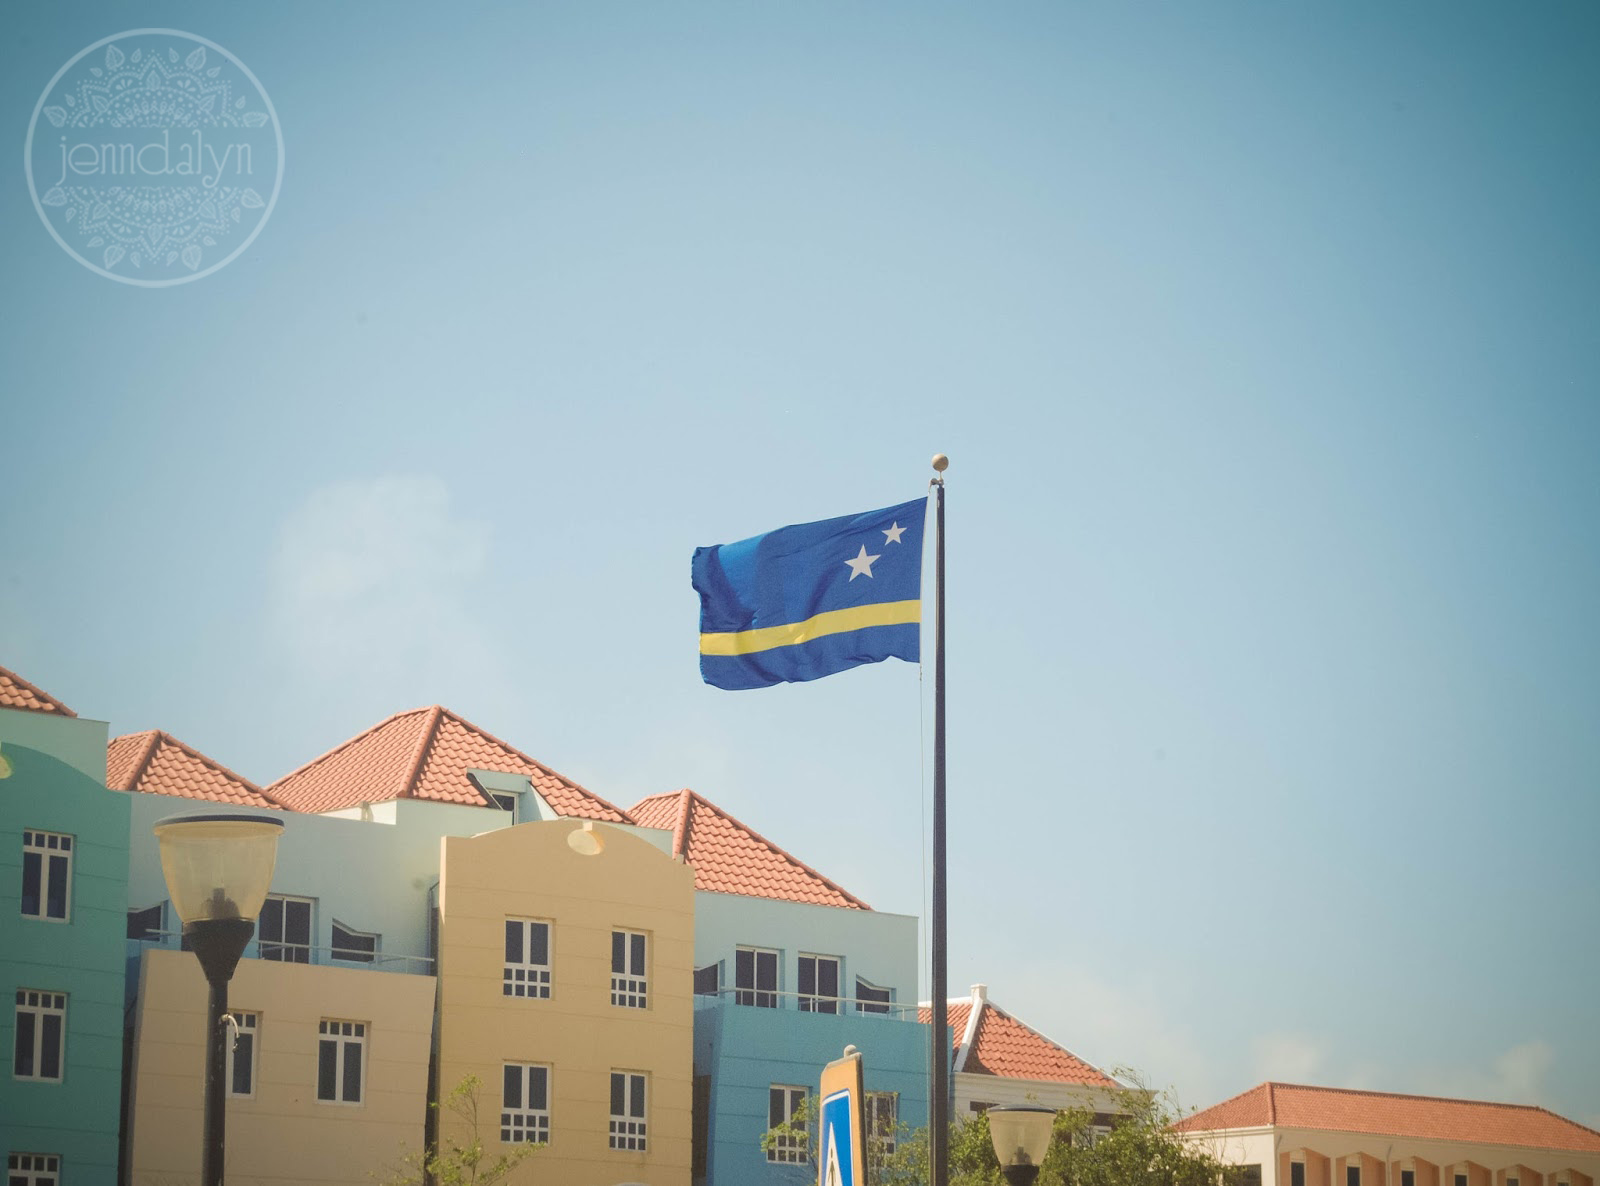 curacao flag willemstad